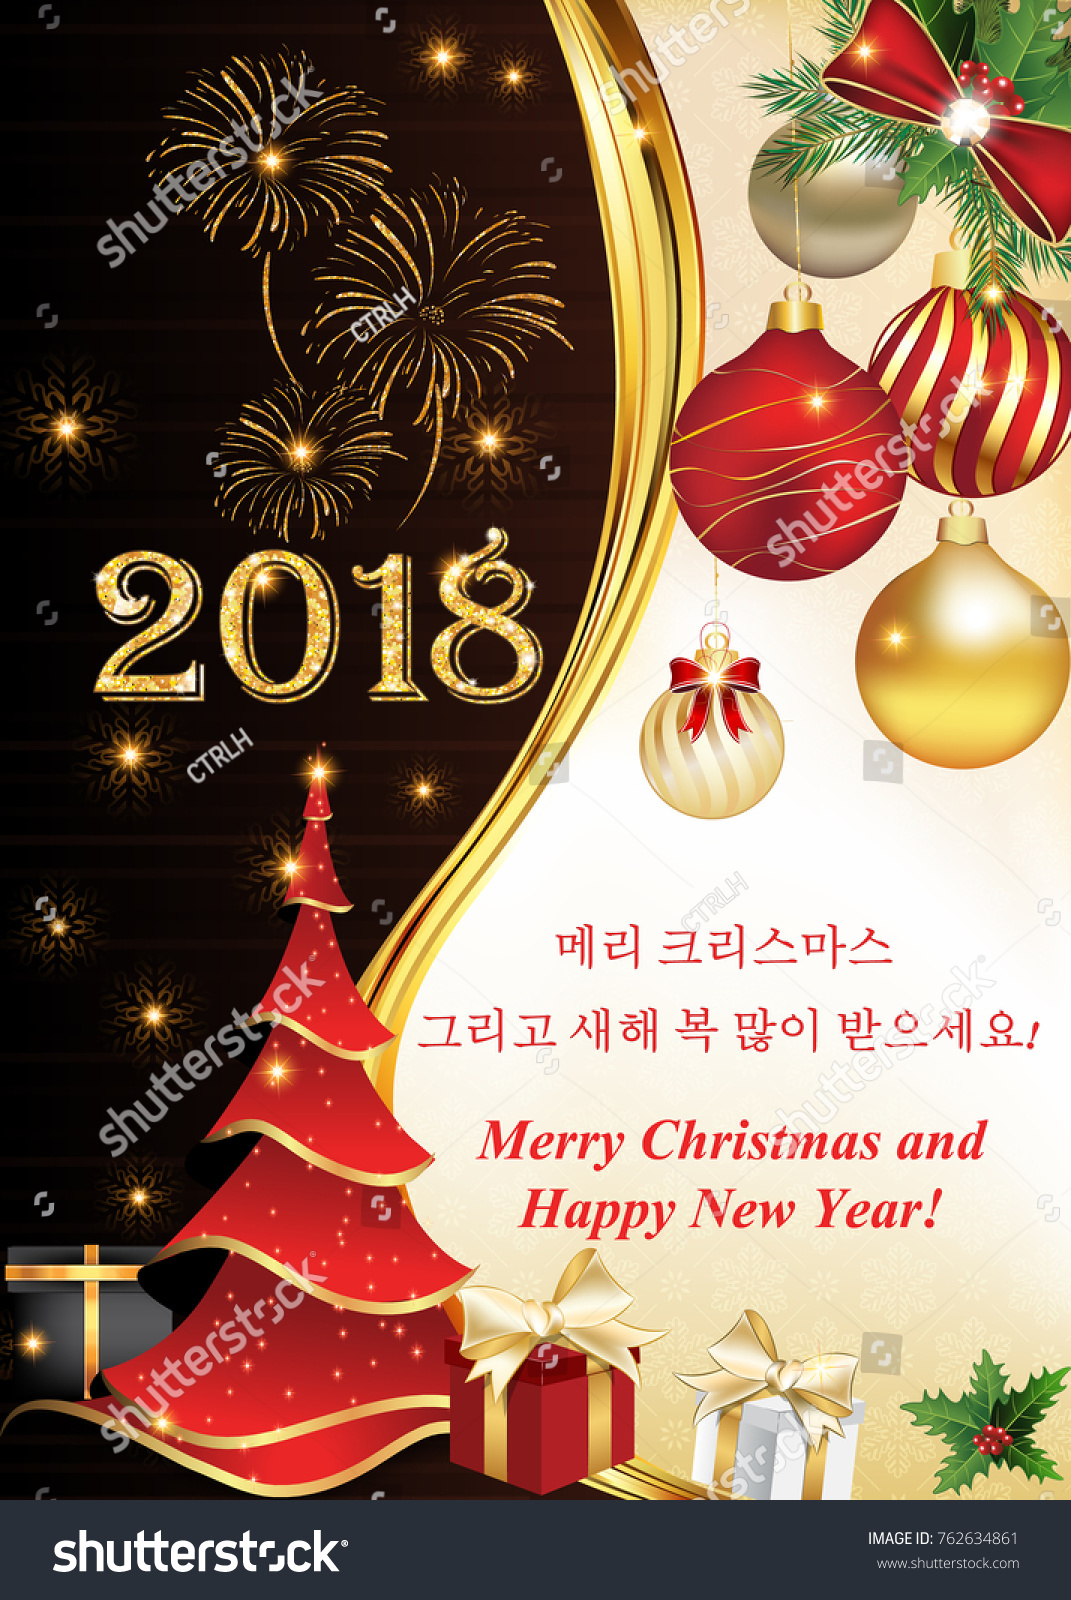 2018 korean holiday seasons greeting card stock illustration 2018 korean holiday seasons greeting card with text in english and korean text translation m4hsunfo